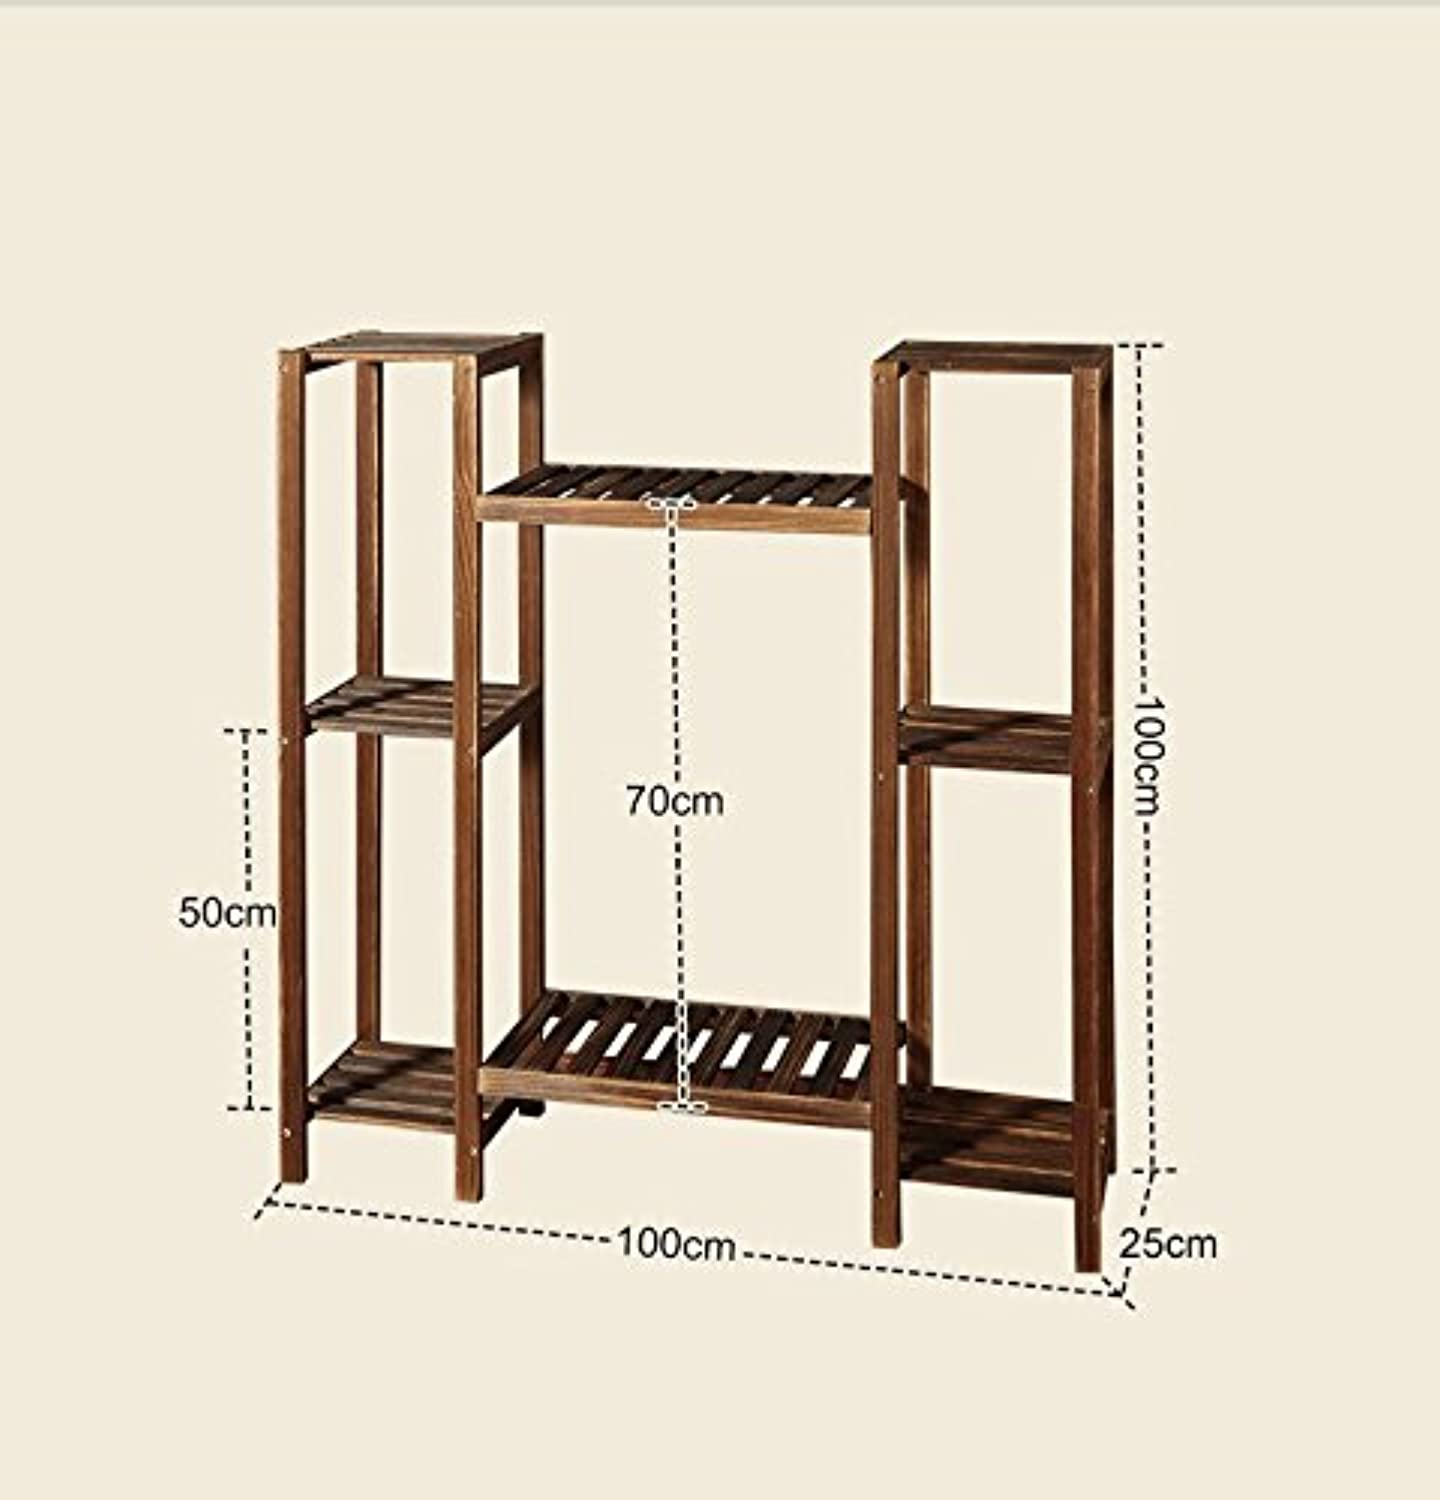 Flower Stand Shelf Multilayer Antiseptic Woody Flower Pots Shelf Easy Assembly Plant Display Rack for Balcony Living Room